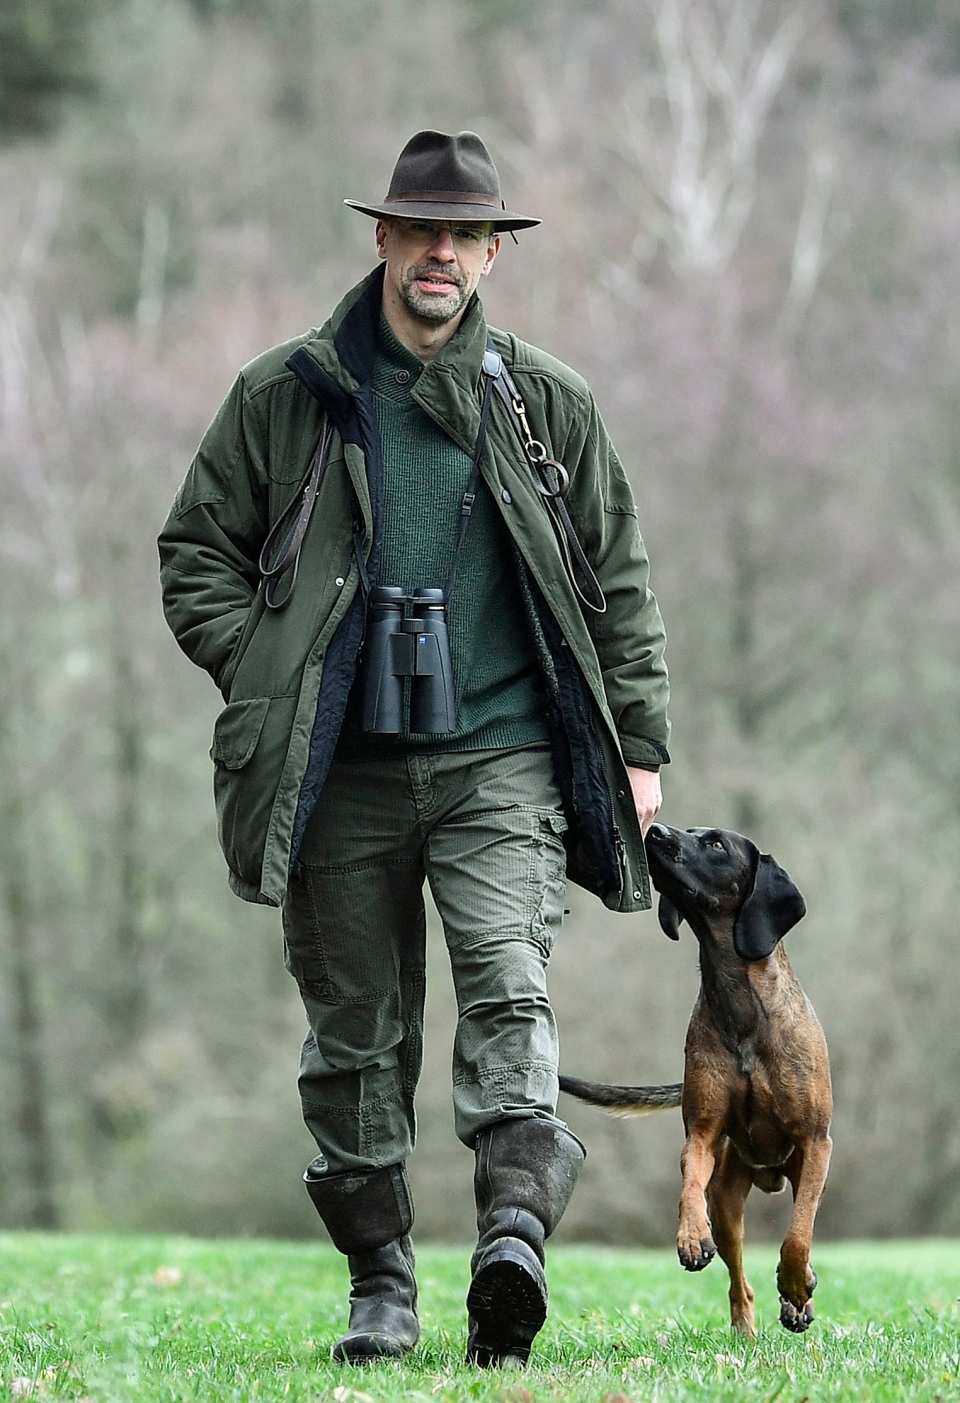 In this Dec. 7, 2018 photo Dirk Gratzel walks with his dog at his hunting ground in Stollberg, western Germany. (AP Photo/Martin Meissner)